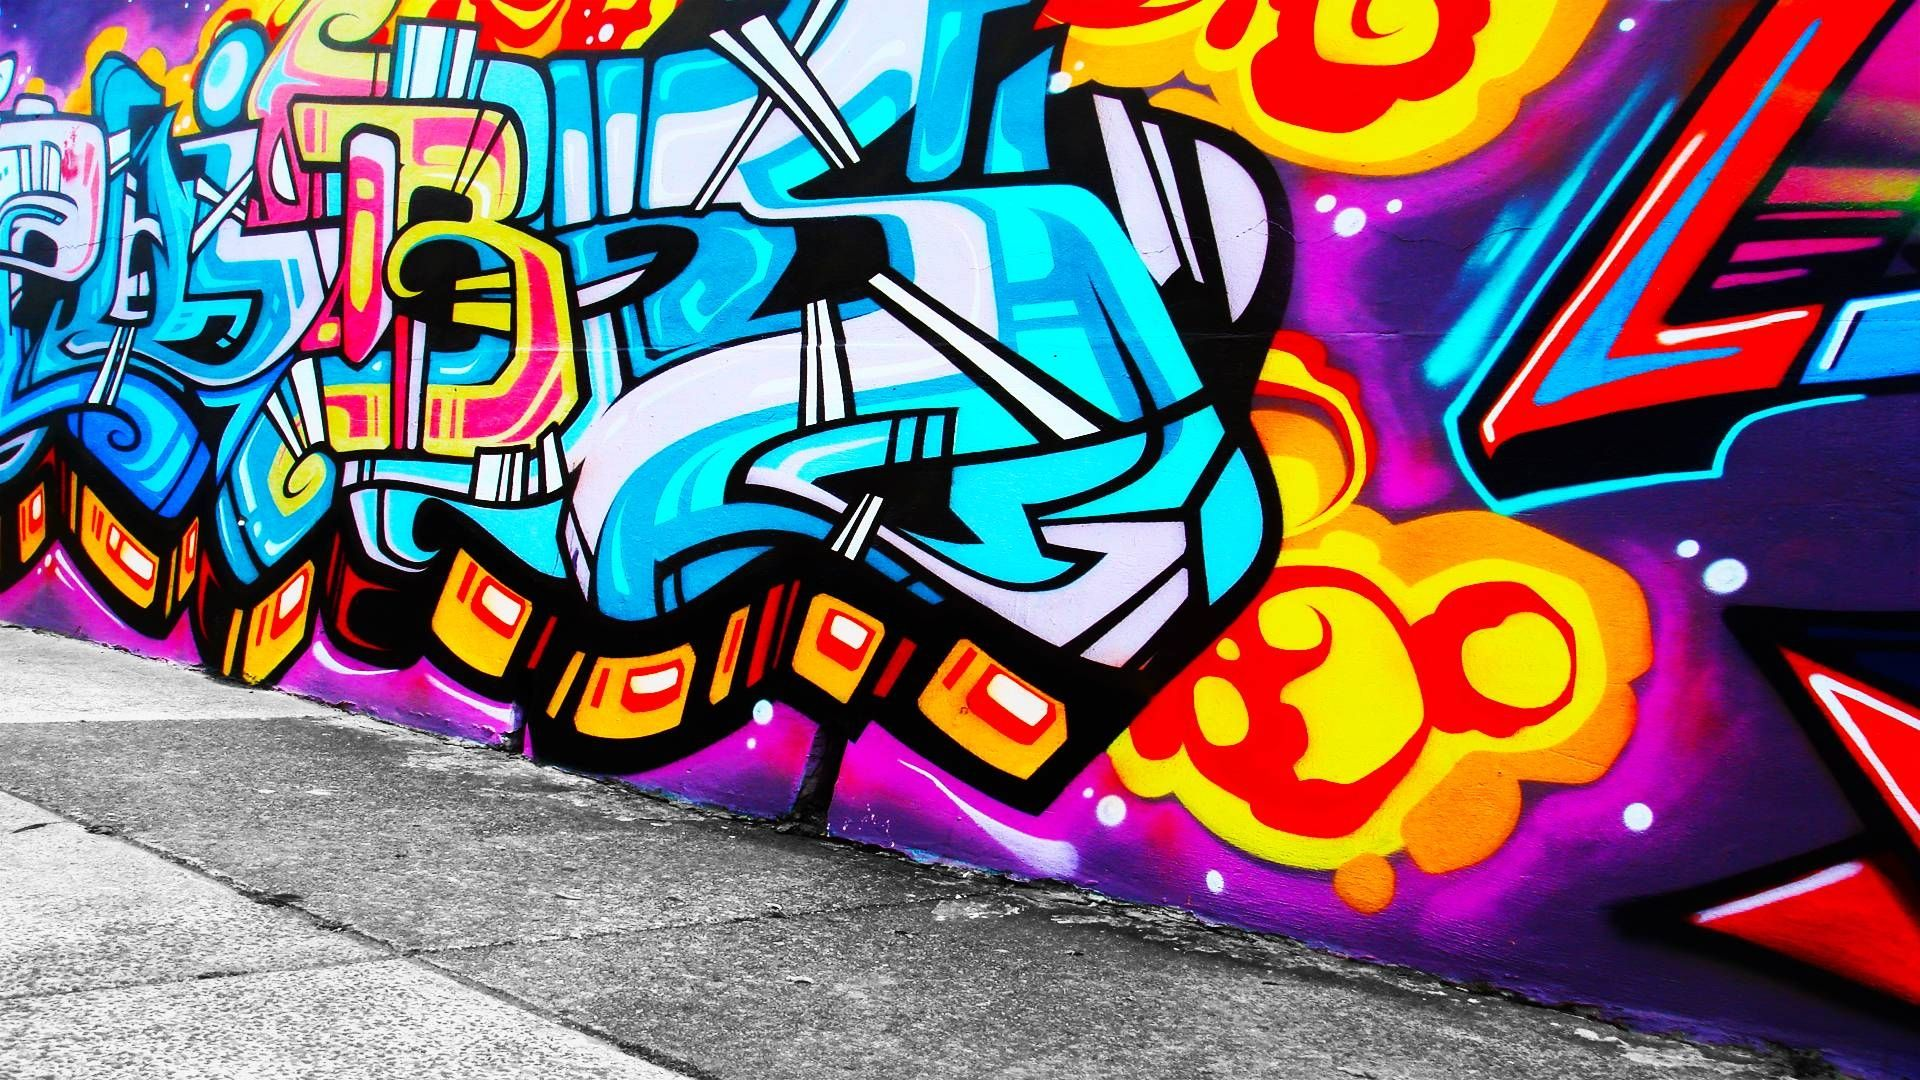 Cool Graffiti Wallpaper Hd Download Free Cool Graffiti Wallpaper Download Download Cool Graffiti Wallpaper Hd Downl Wallpaper Seni Graffiti Art Gambar Grafit